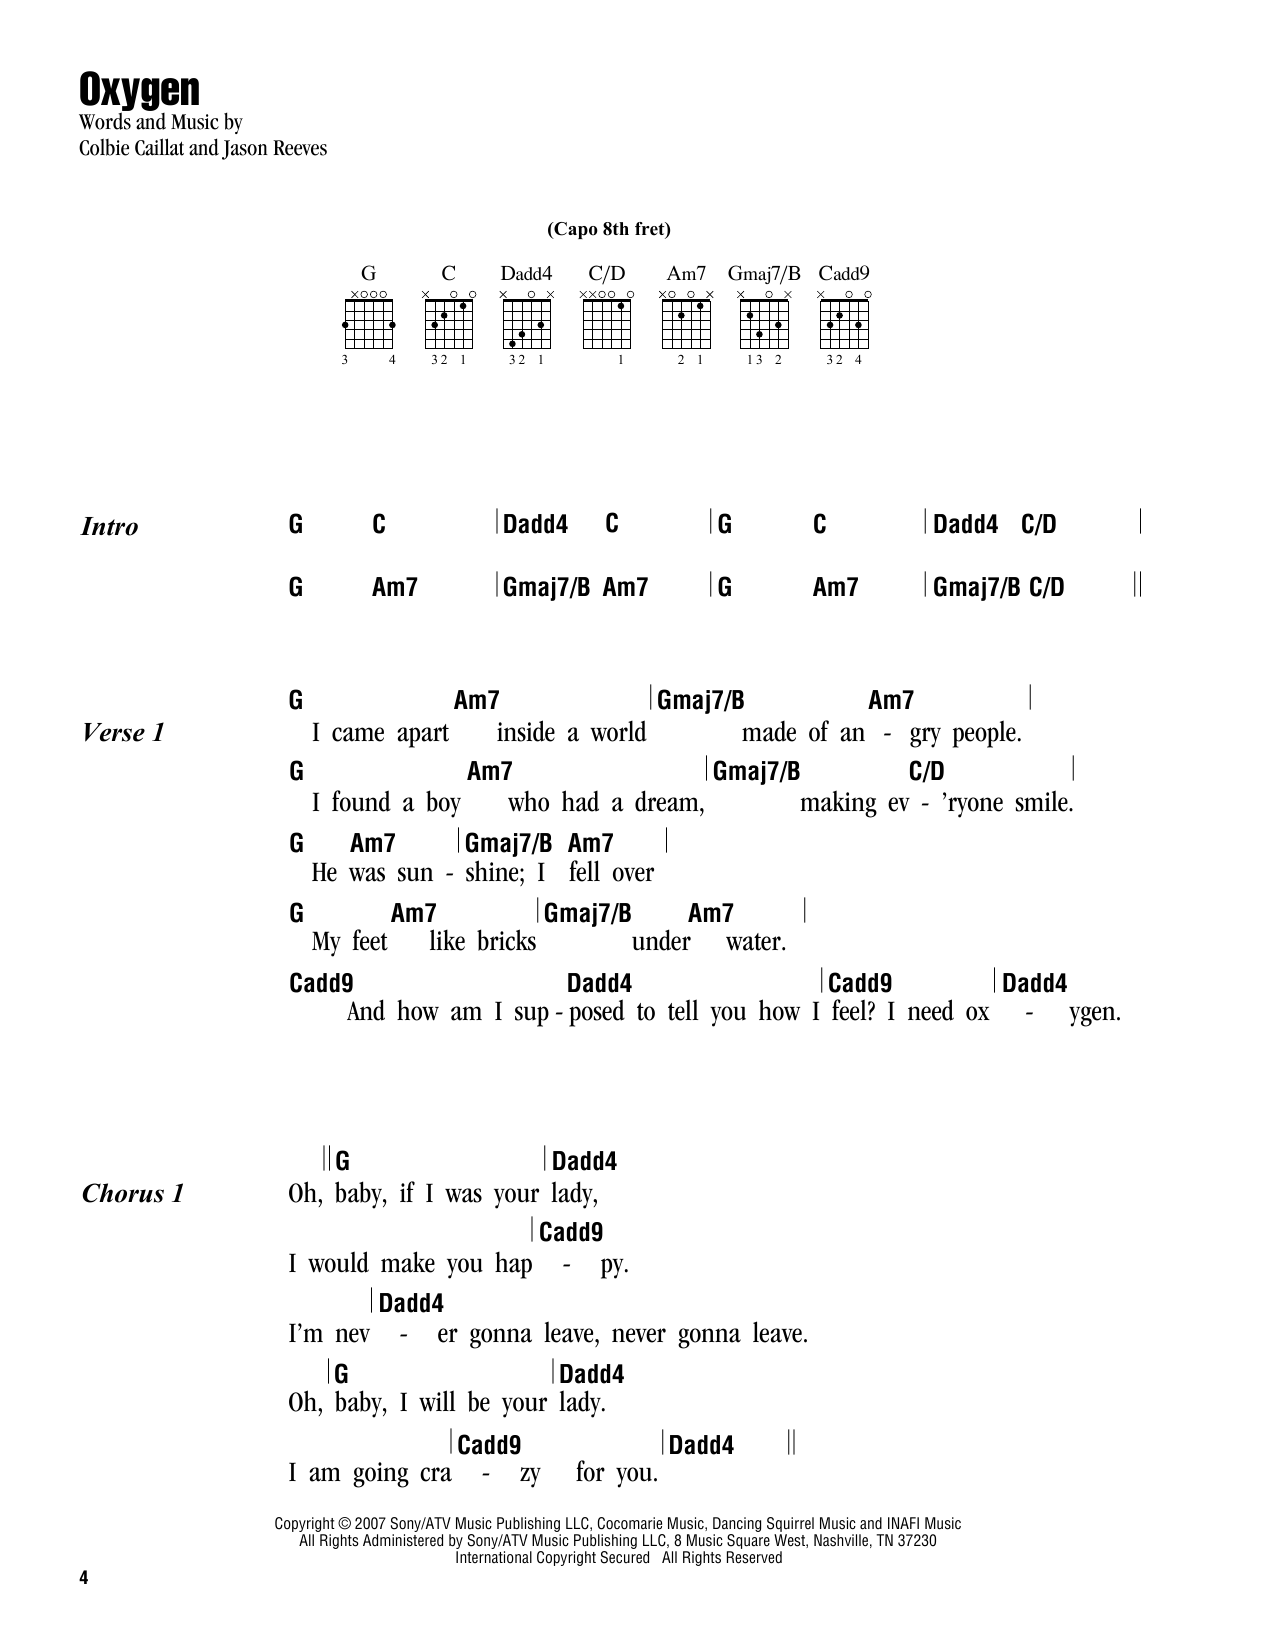 Oxygen sheet music by colbie caillat lyrics chords 163252 colbie caillat oxygen lyrics chords hexwebz Image collections